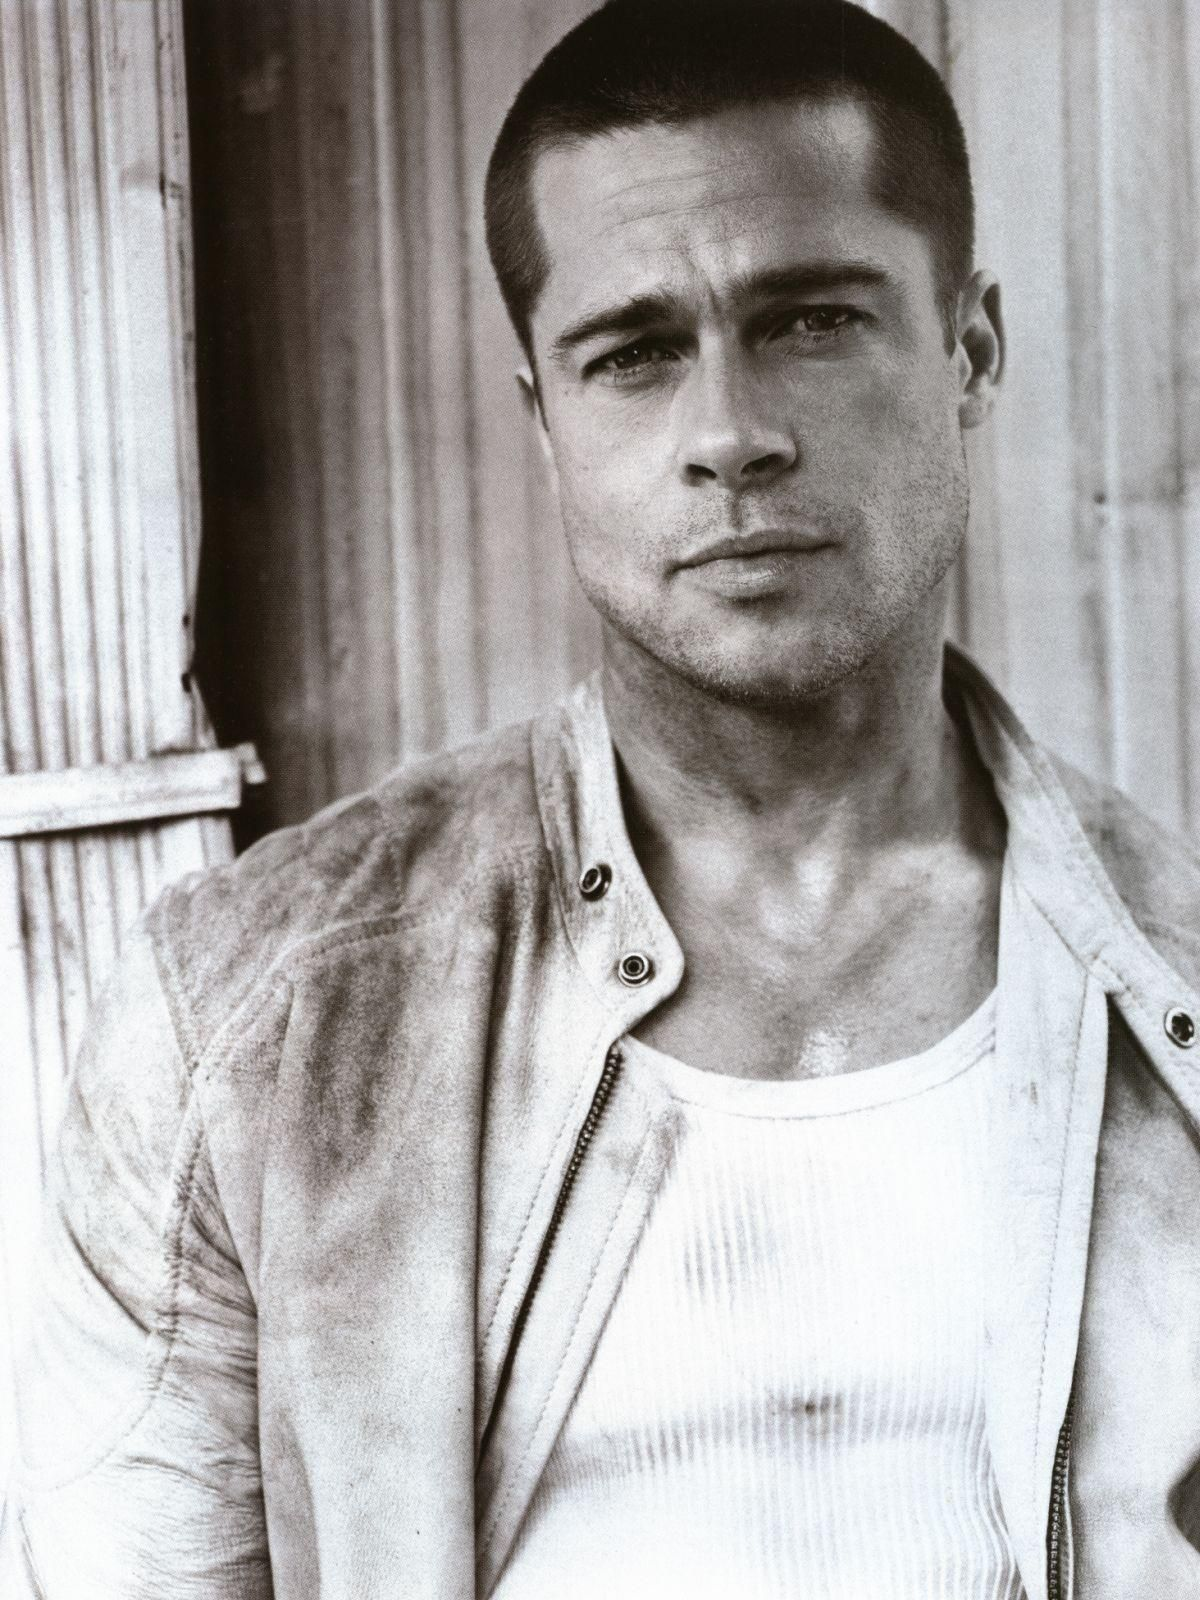 Back when Brad Pitt actually looked good.